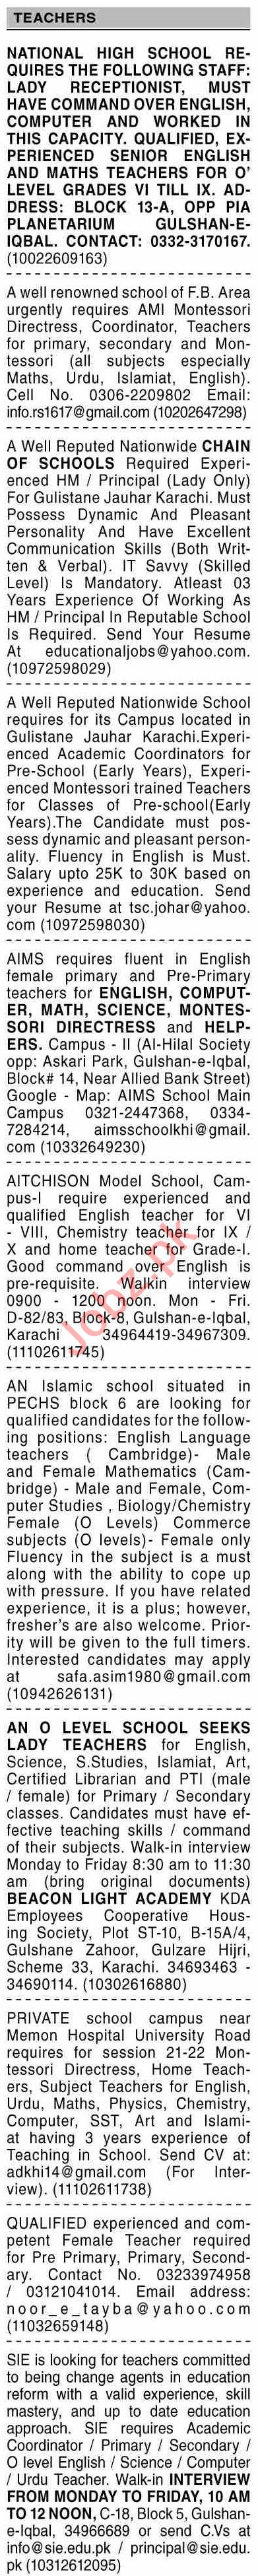 Dawn Sunday Classified Ads 20 June 2021 for Teaching Staff